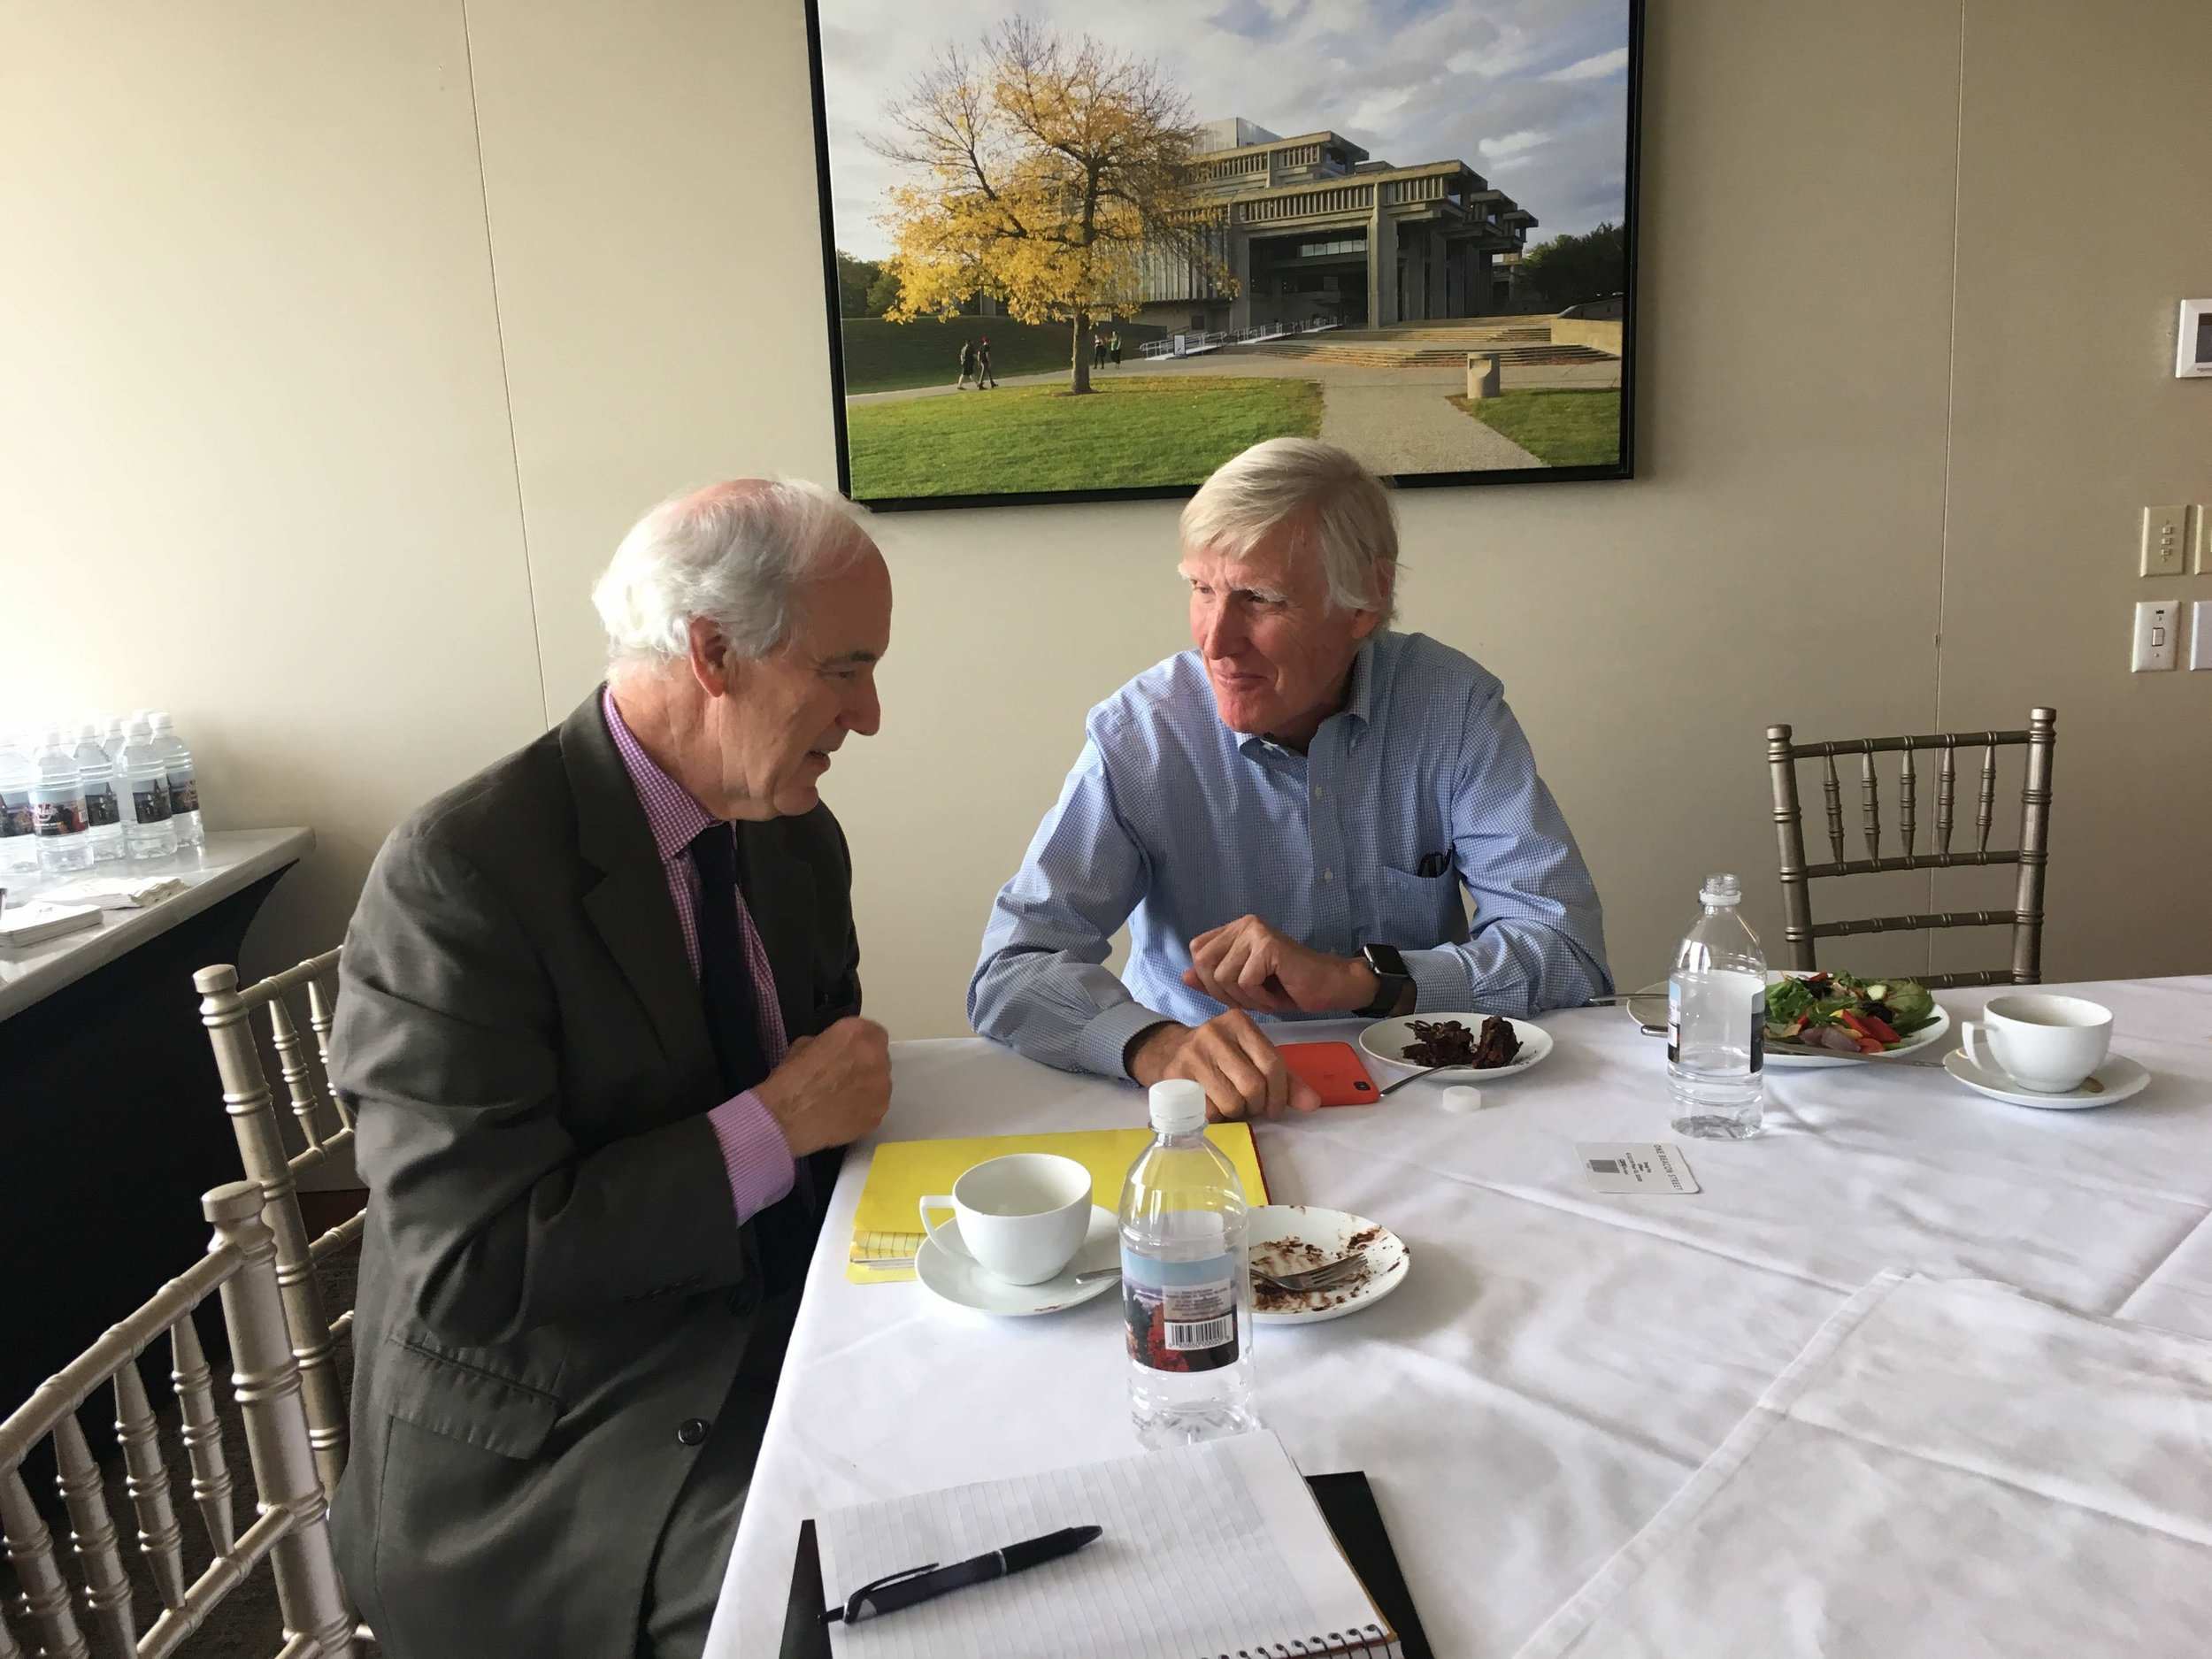 Robert Turner, Director of Pinnacle Projects shares insights with CAP Presenter Doug Foy on June 12